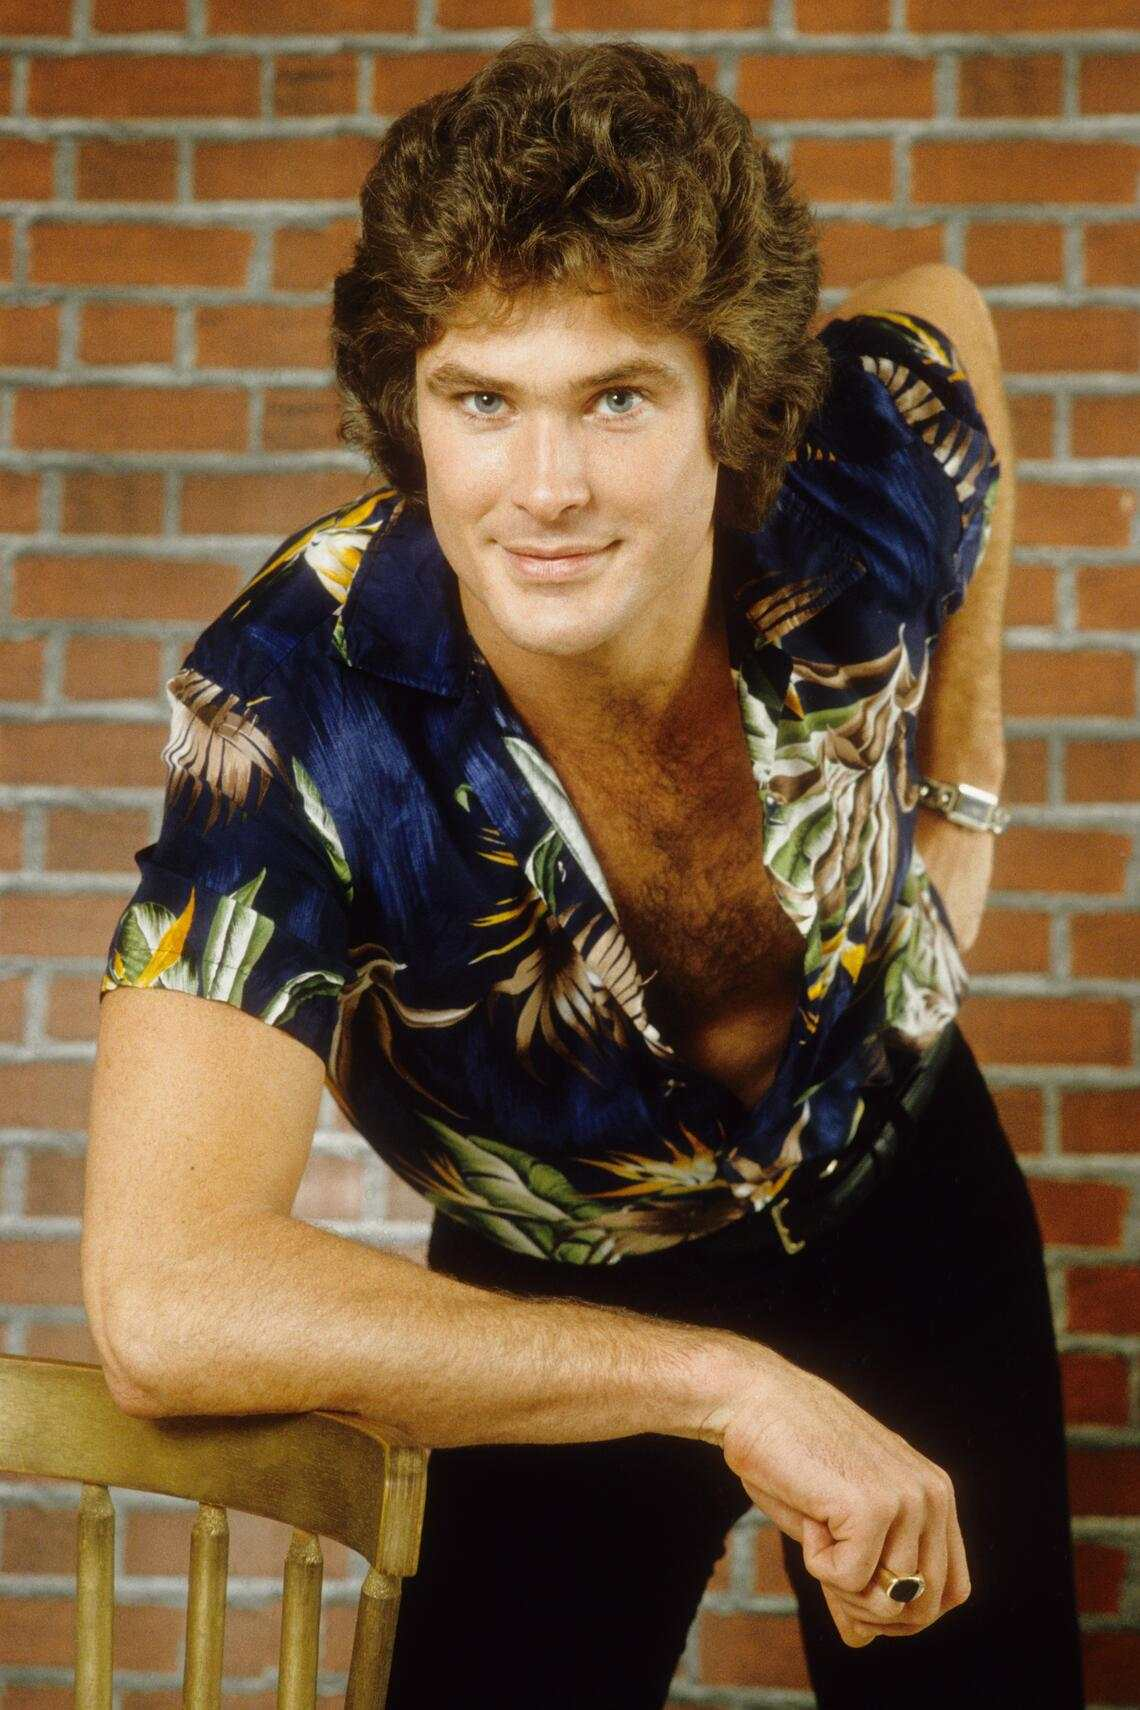 LOS ANGELES - JANUARY 11:  Actor and singer David Hasselhoff poses for a portrait on January 11, 1980 in Los Angeles, California. (Photo by Michael Ochs Archives/Getty Images)